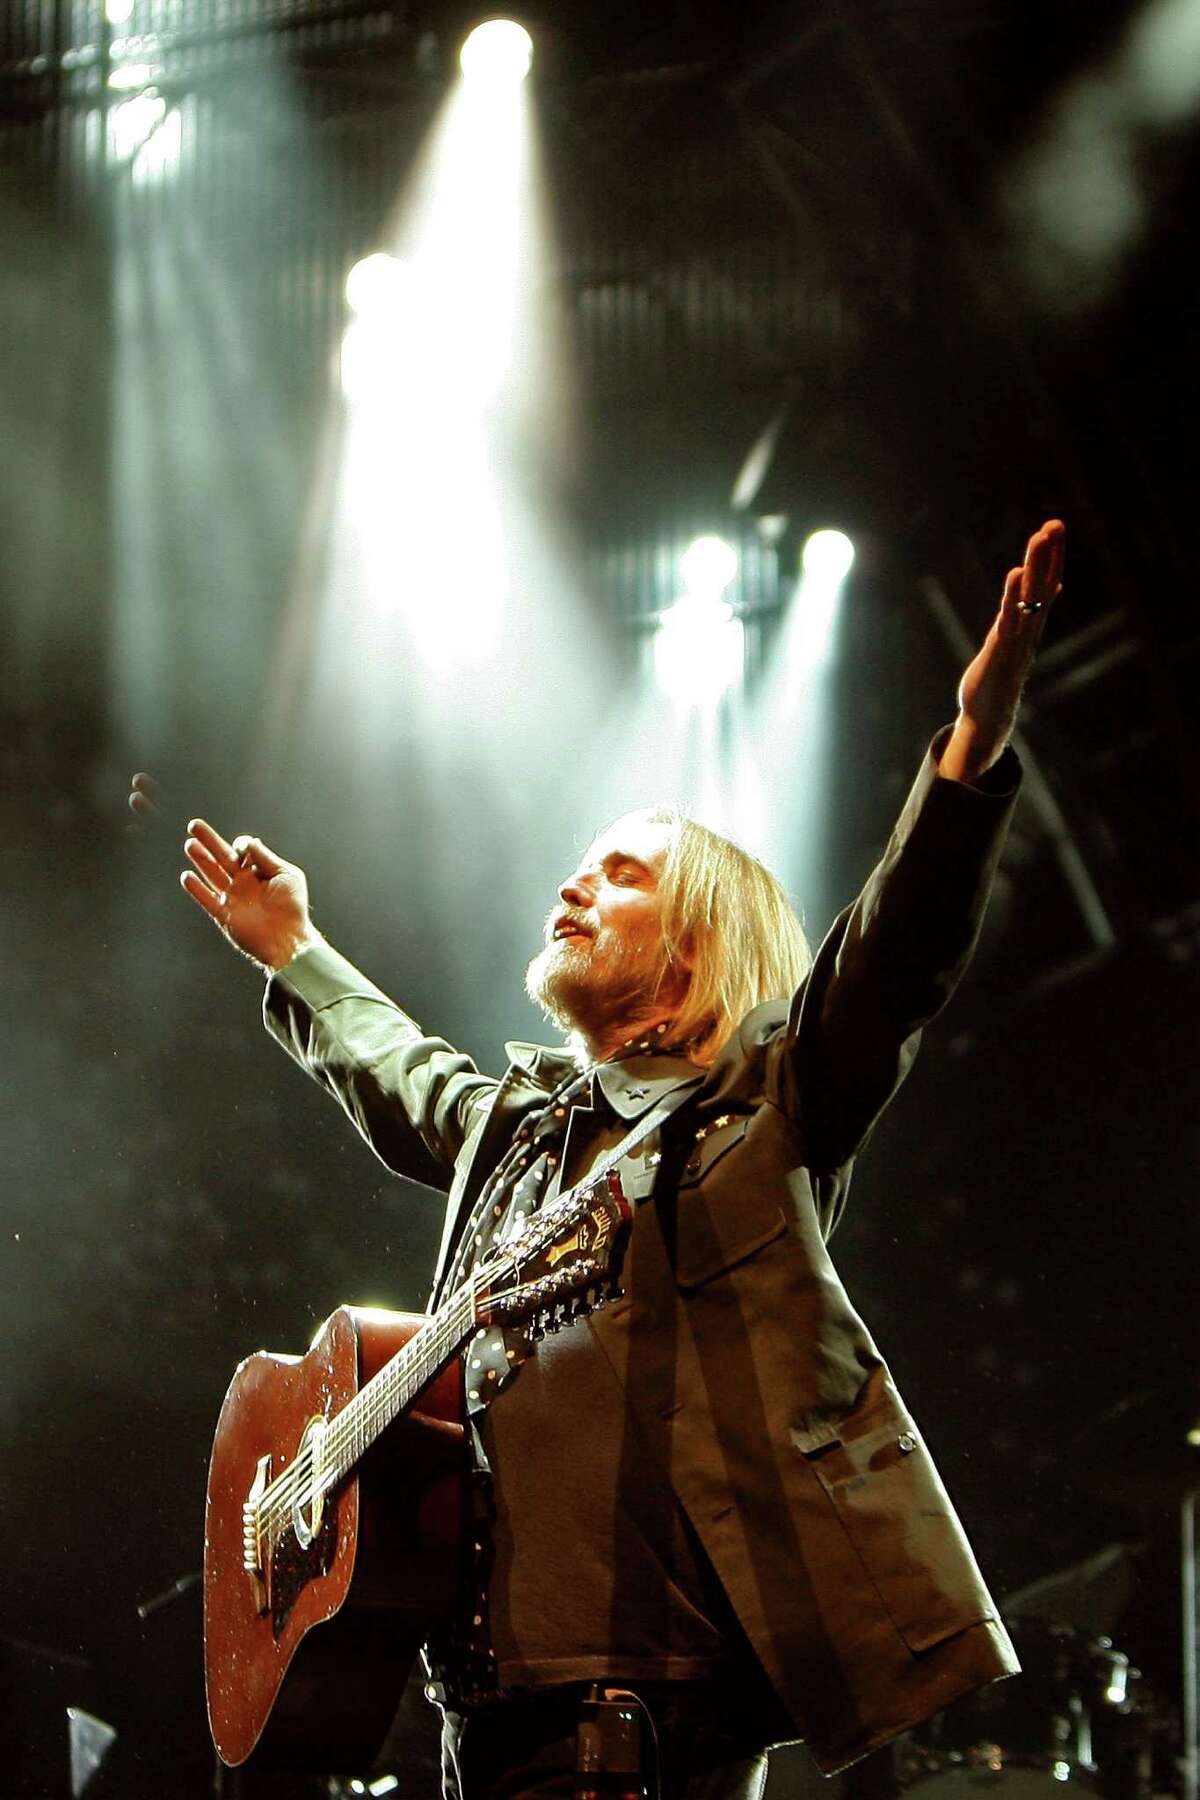 Tom Petty performs on Aug. 23, 2008 at Golden Gate Park in San Francisco, Calif.